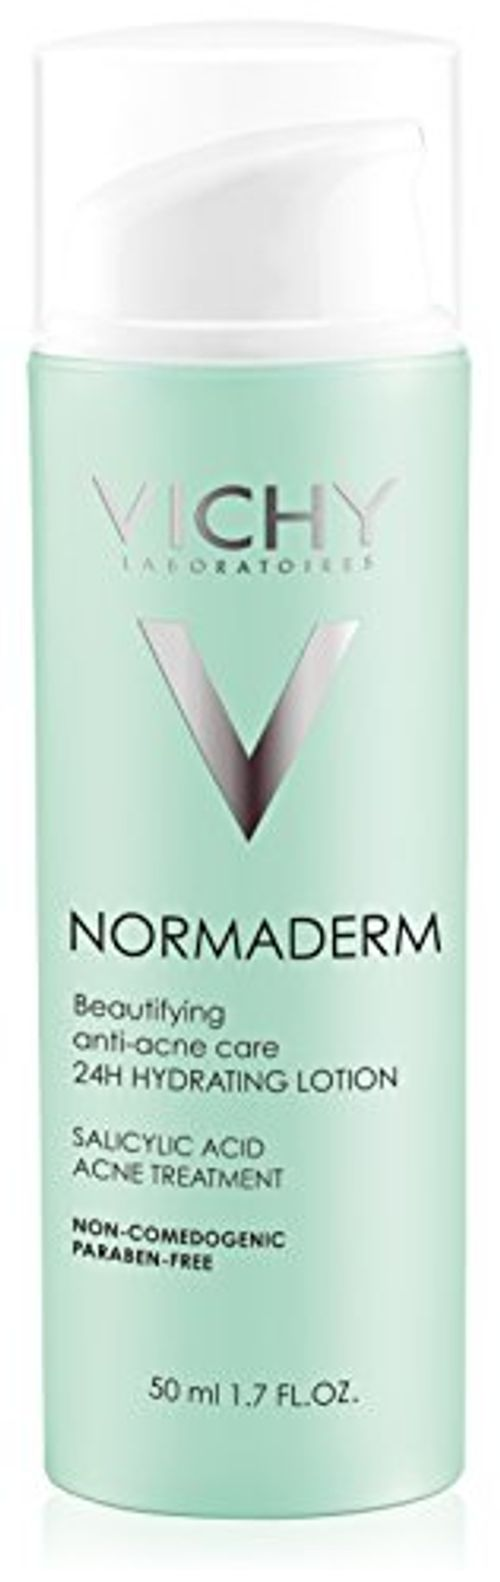 photo Wallpaper of Vichy-Vichy Normaderm Tratamiento Hidrante Anti Imperfecciones   50 Ml-